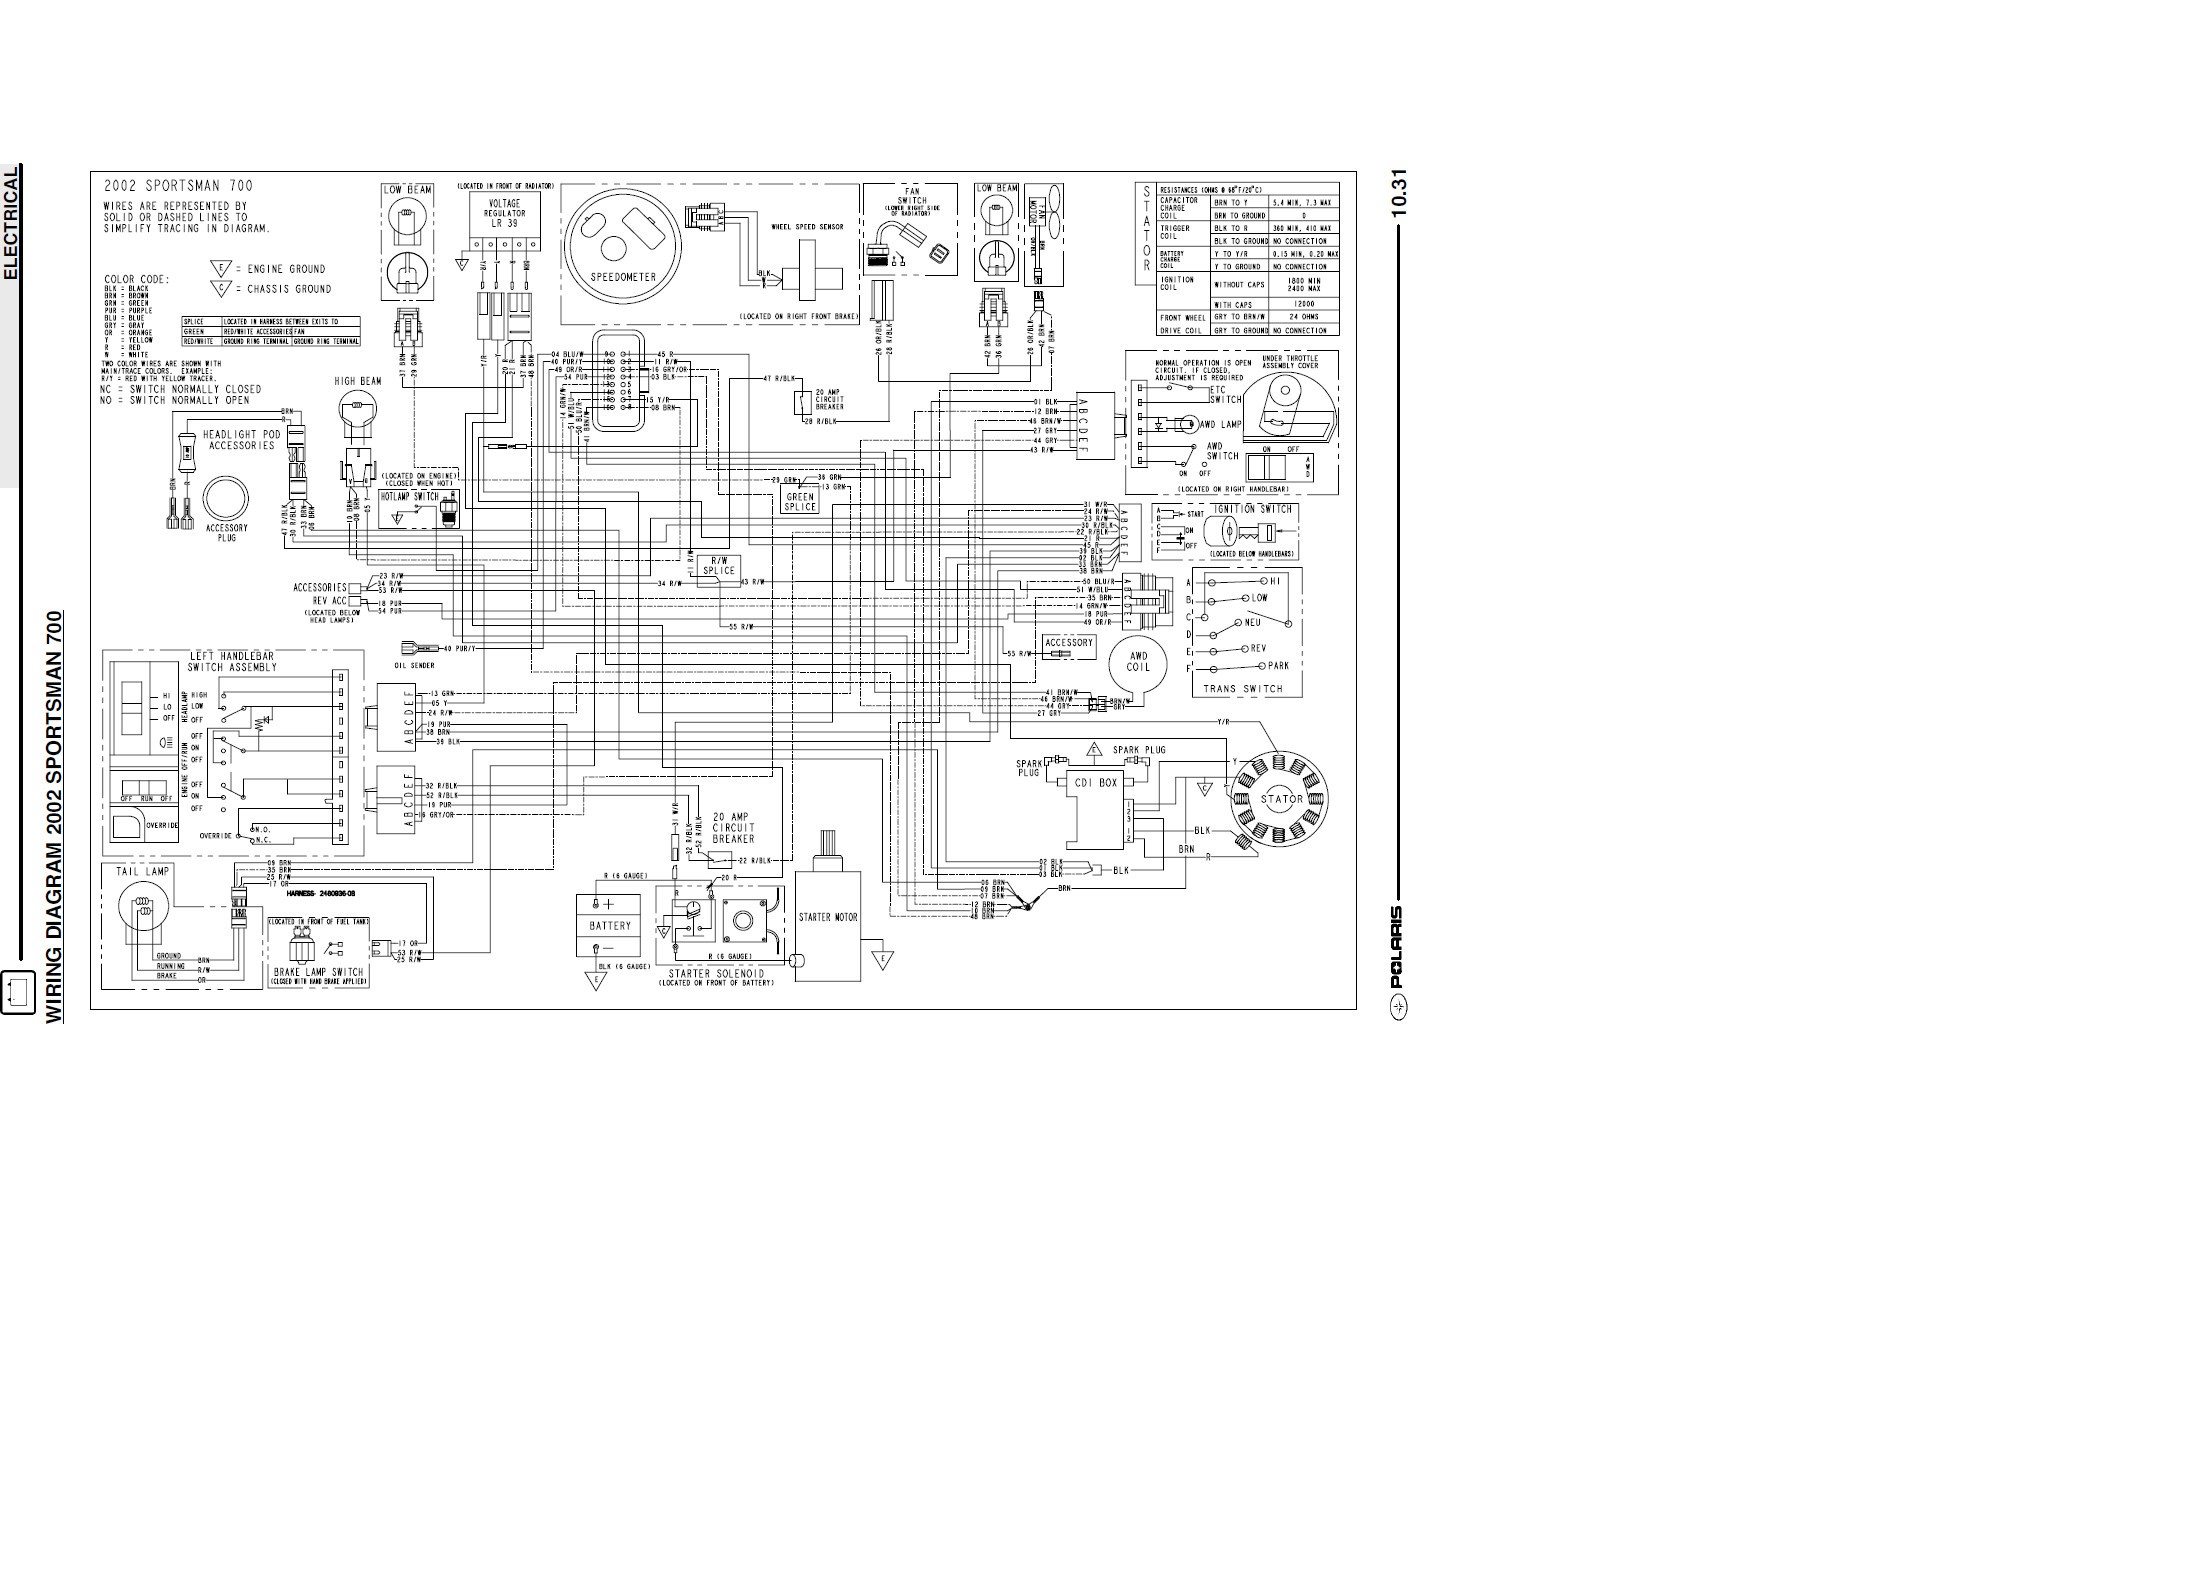 apc 900 xp wiring diagram apc mini chopper wiring diagram